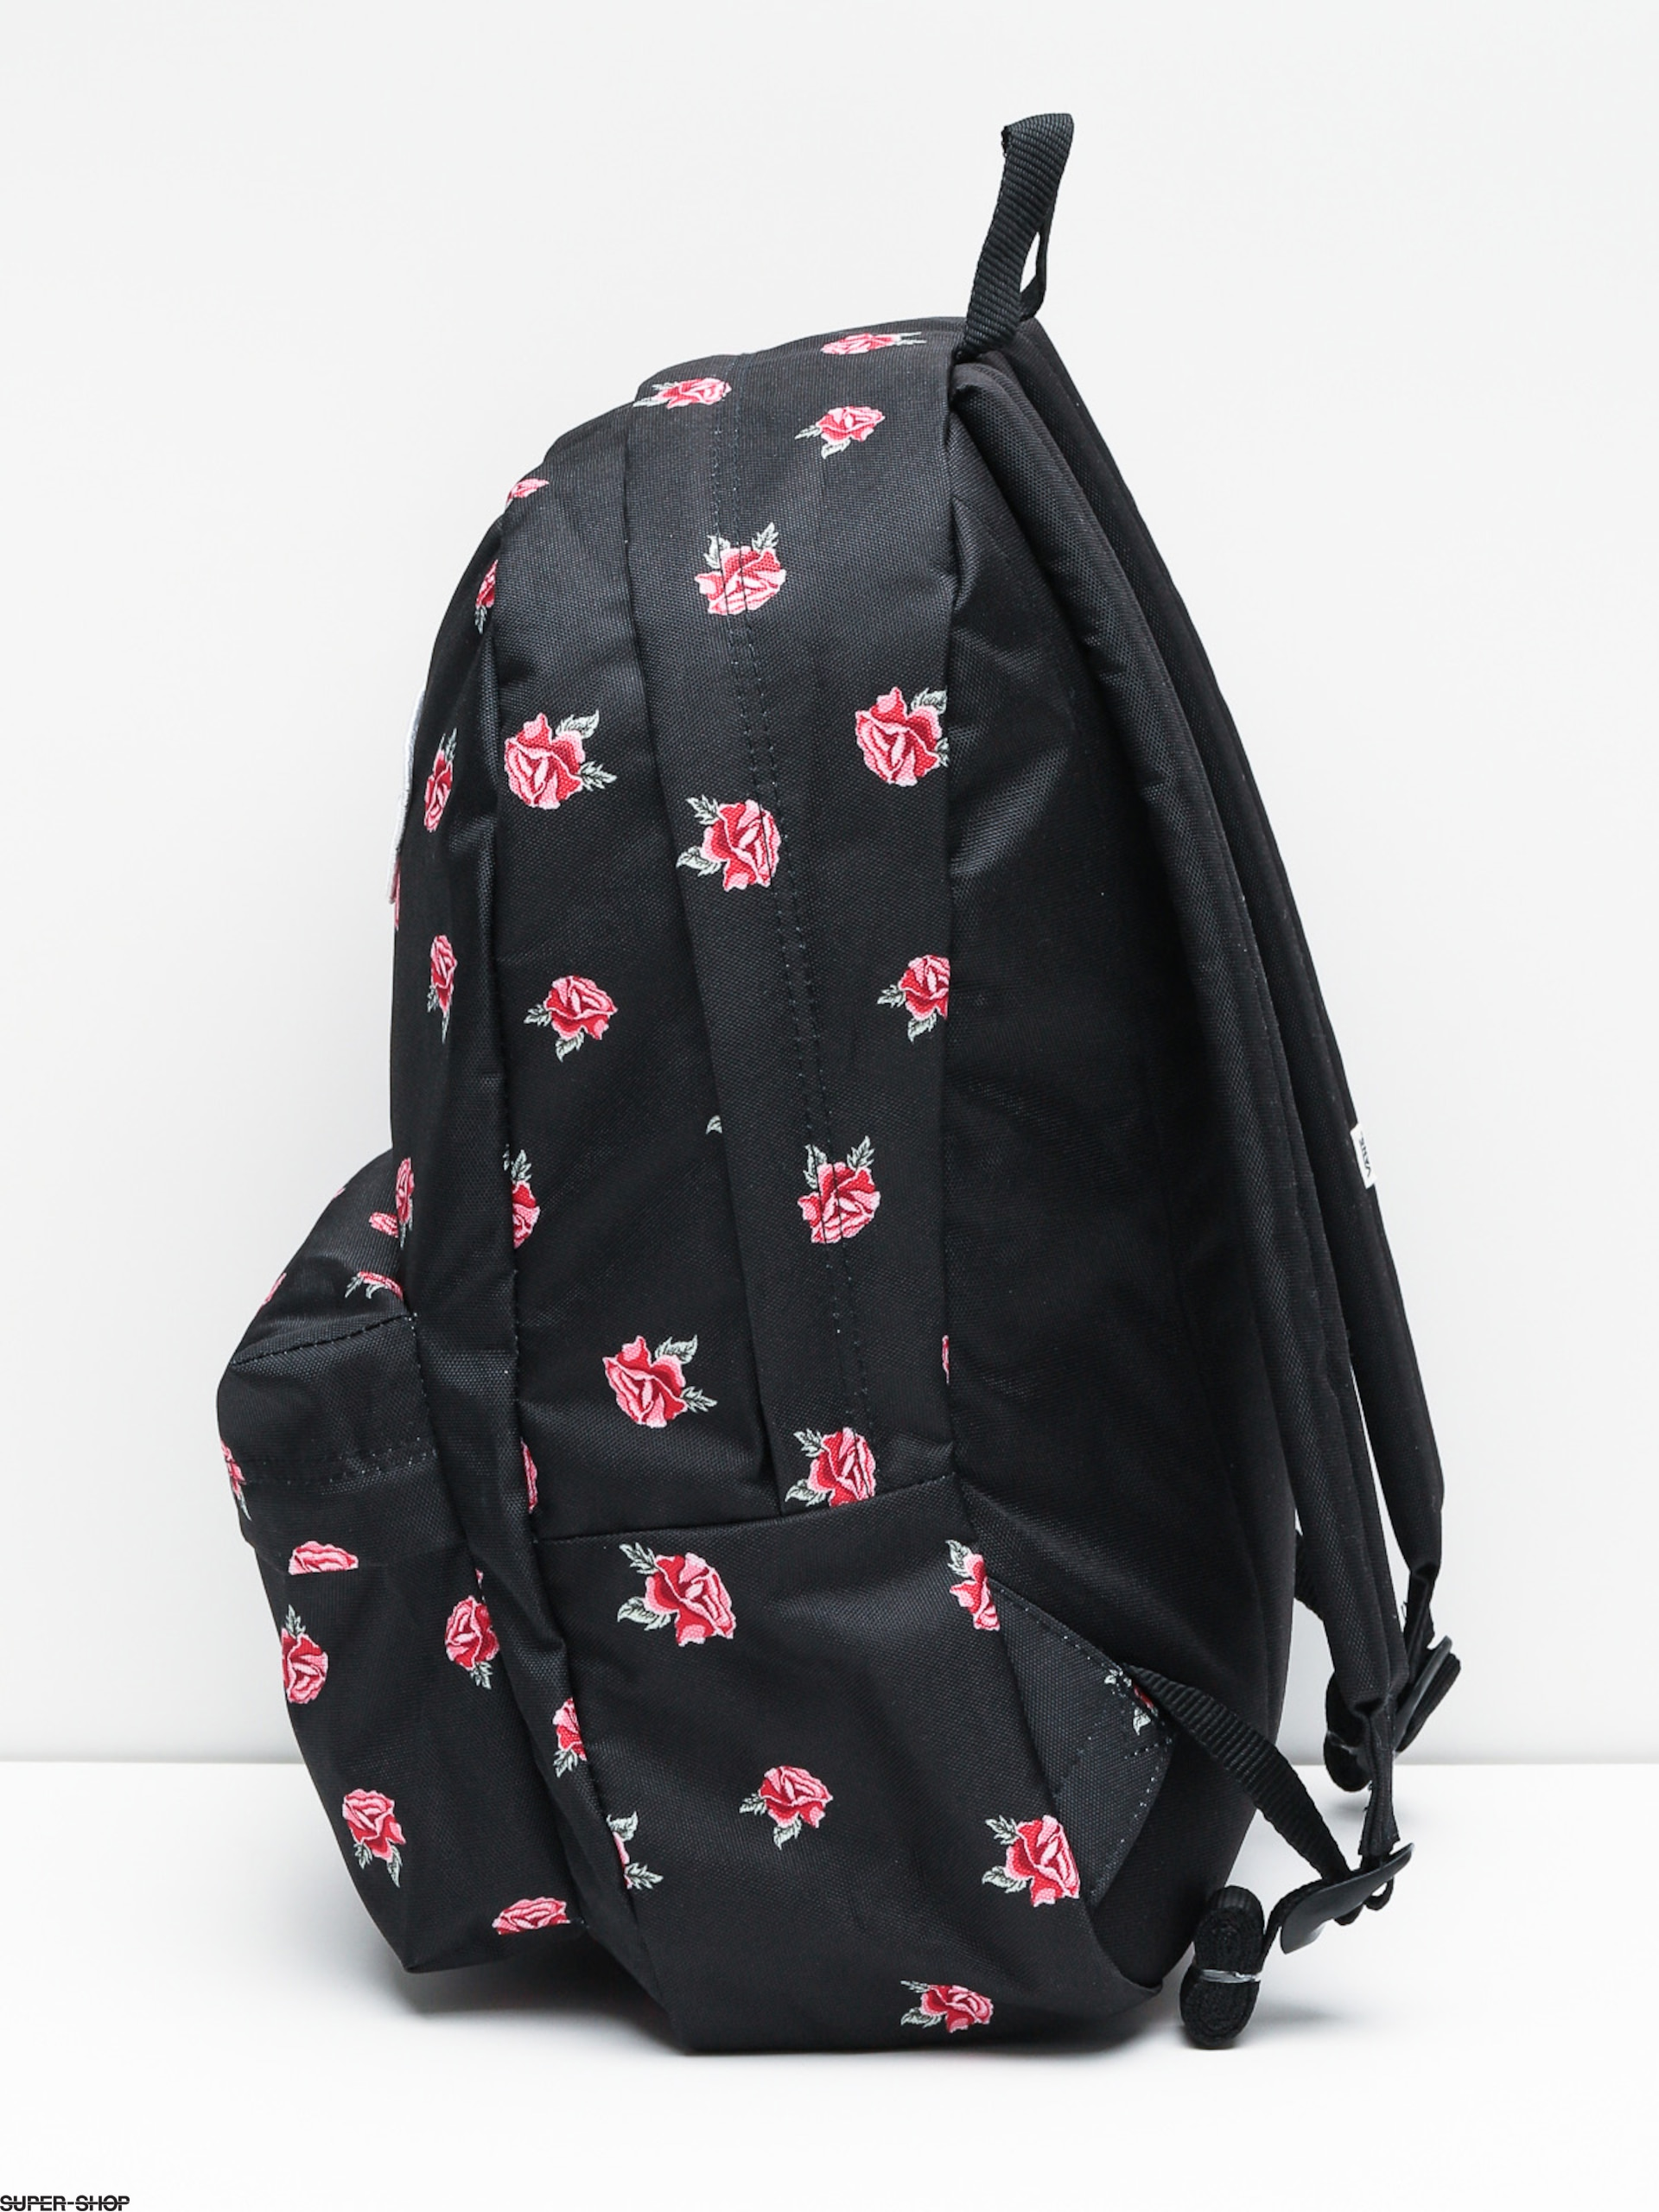 1ac91969cca Vans Black Backpack With Roses- Fenix Toulouse Handball